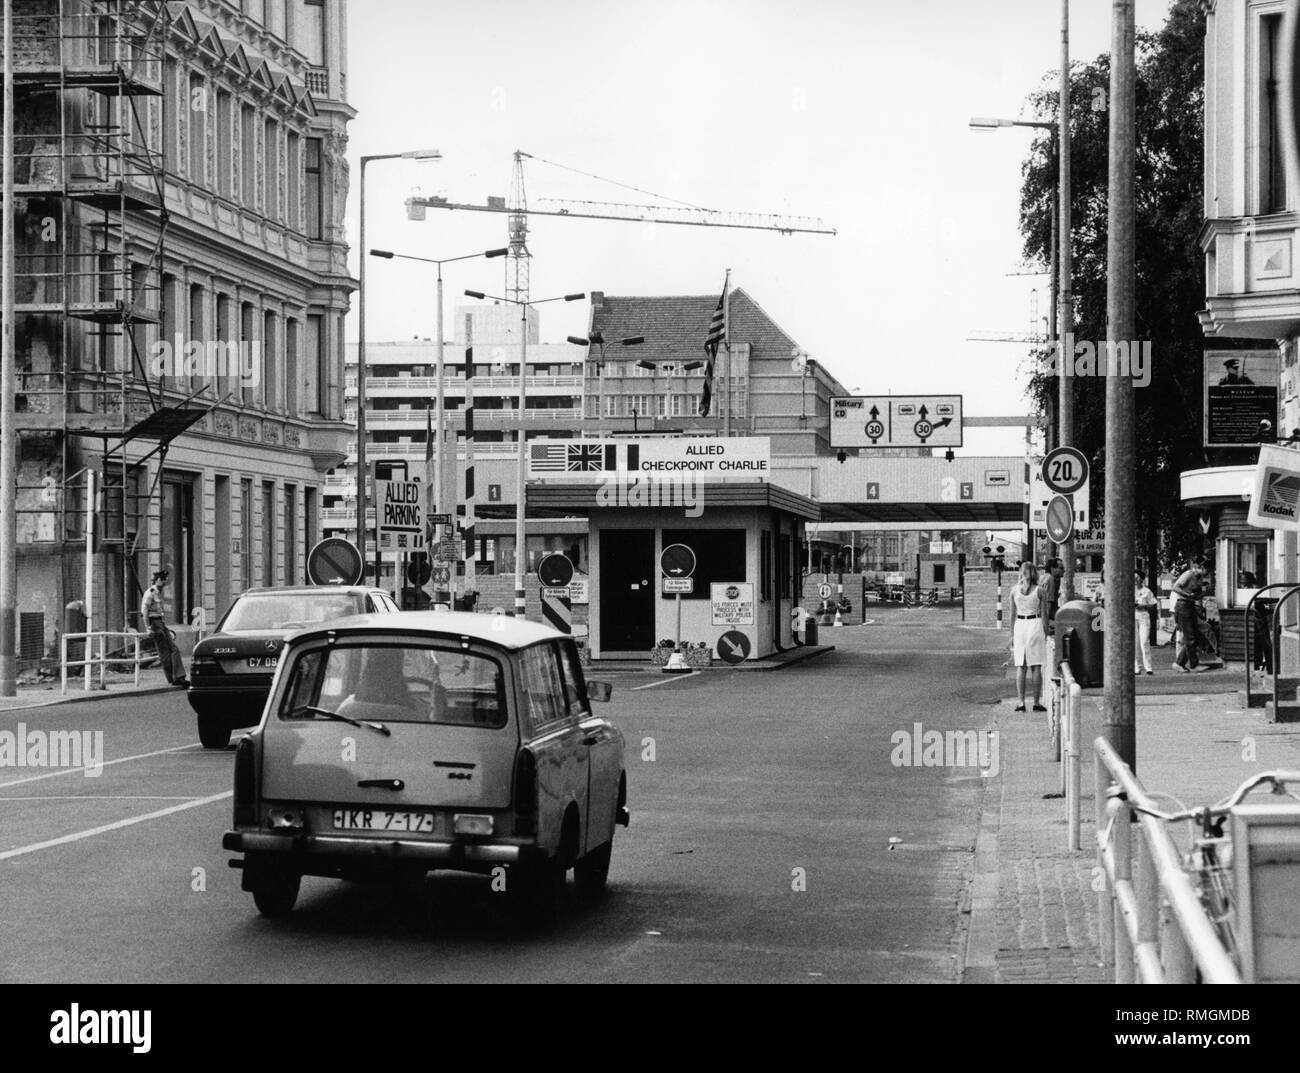 View along the Friedrichstrasse on the Allied border posts with some vehicles, passers-by and border guards. - Stock Image